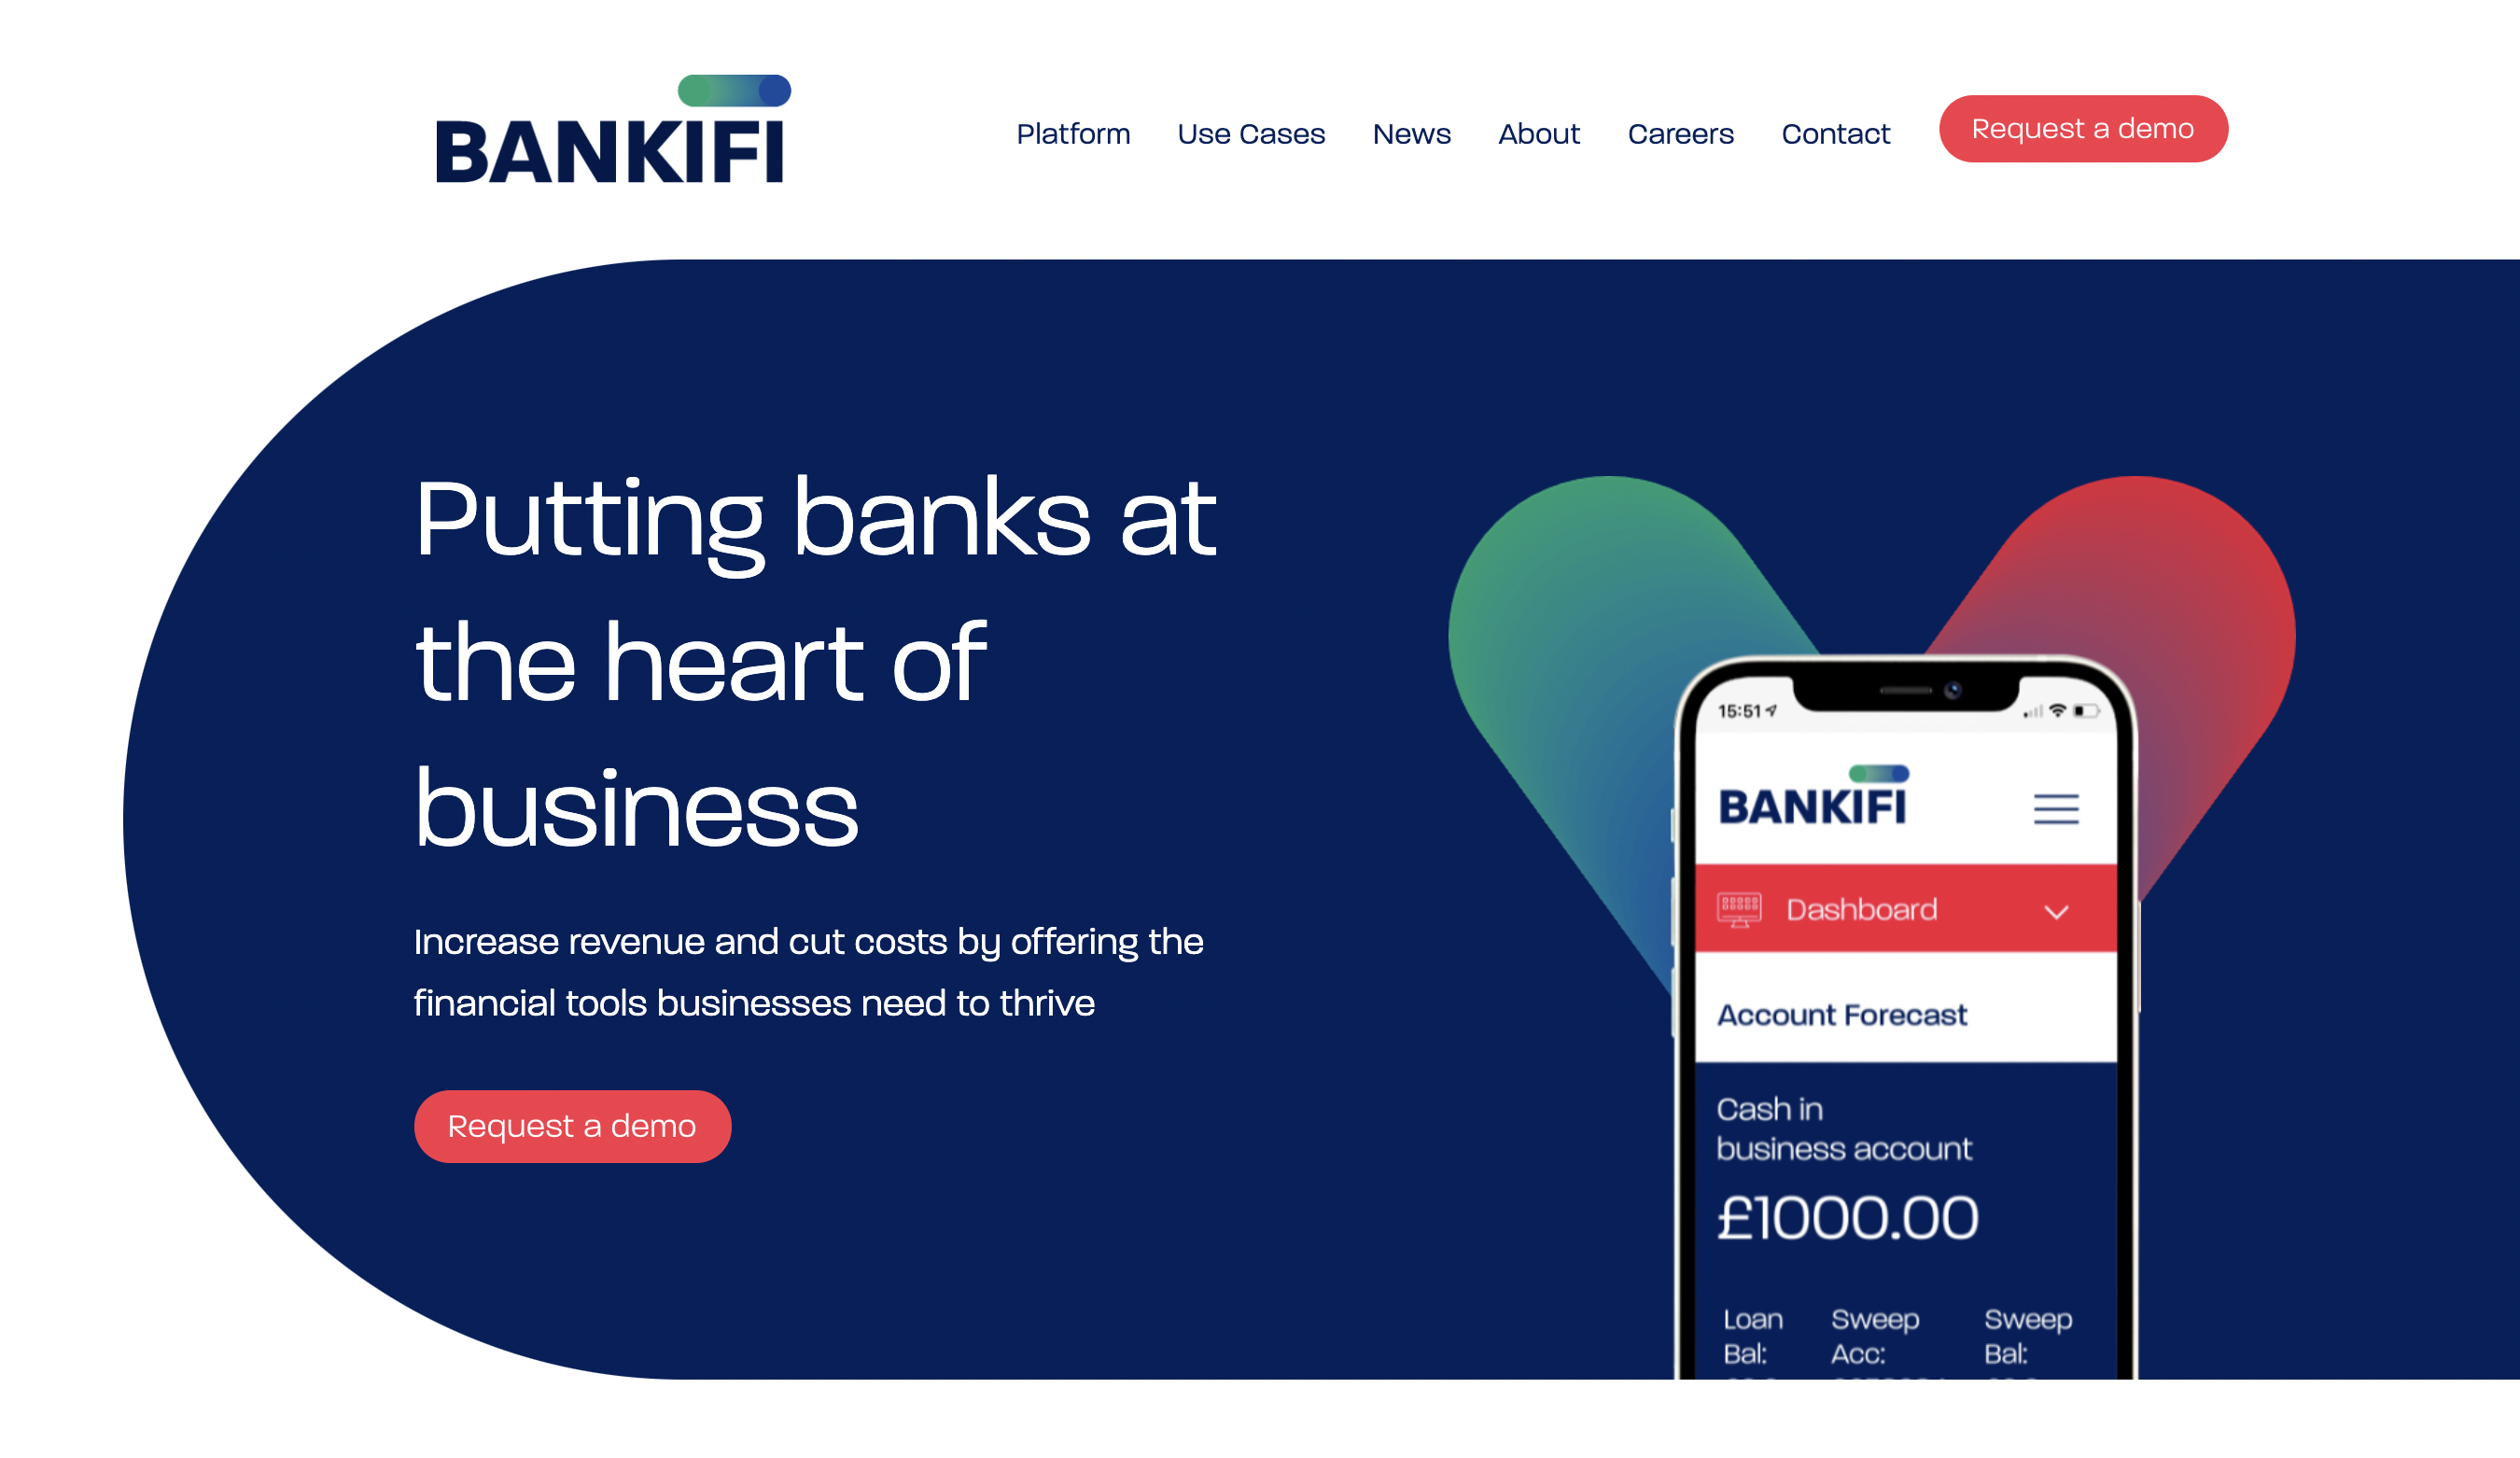 Press Release: BankiFi launches new website and announces seven new hires